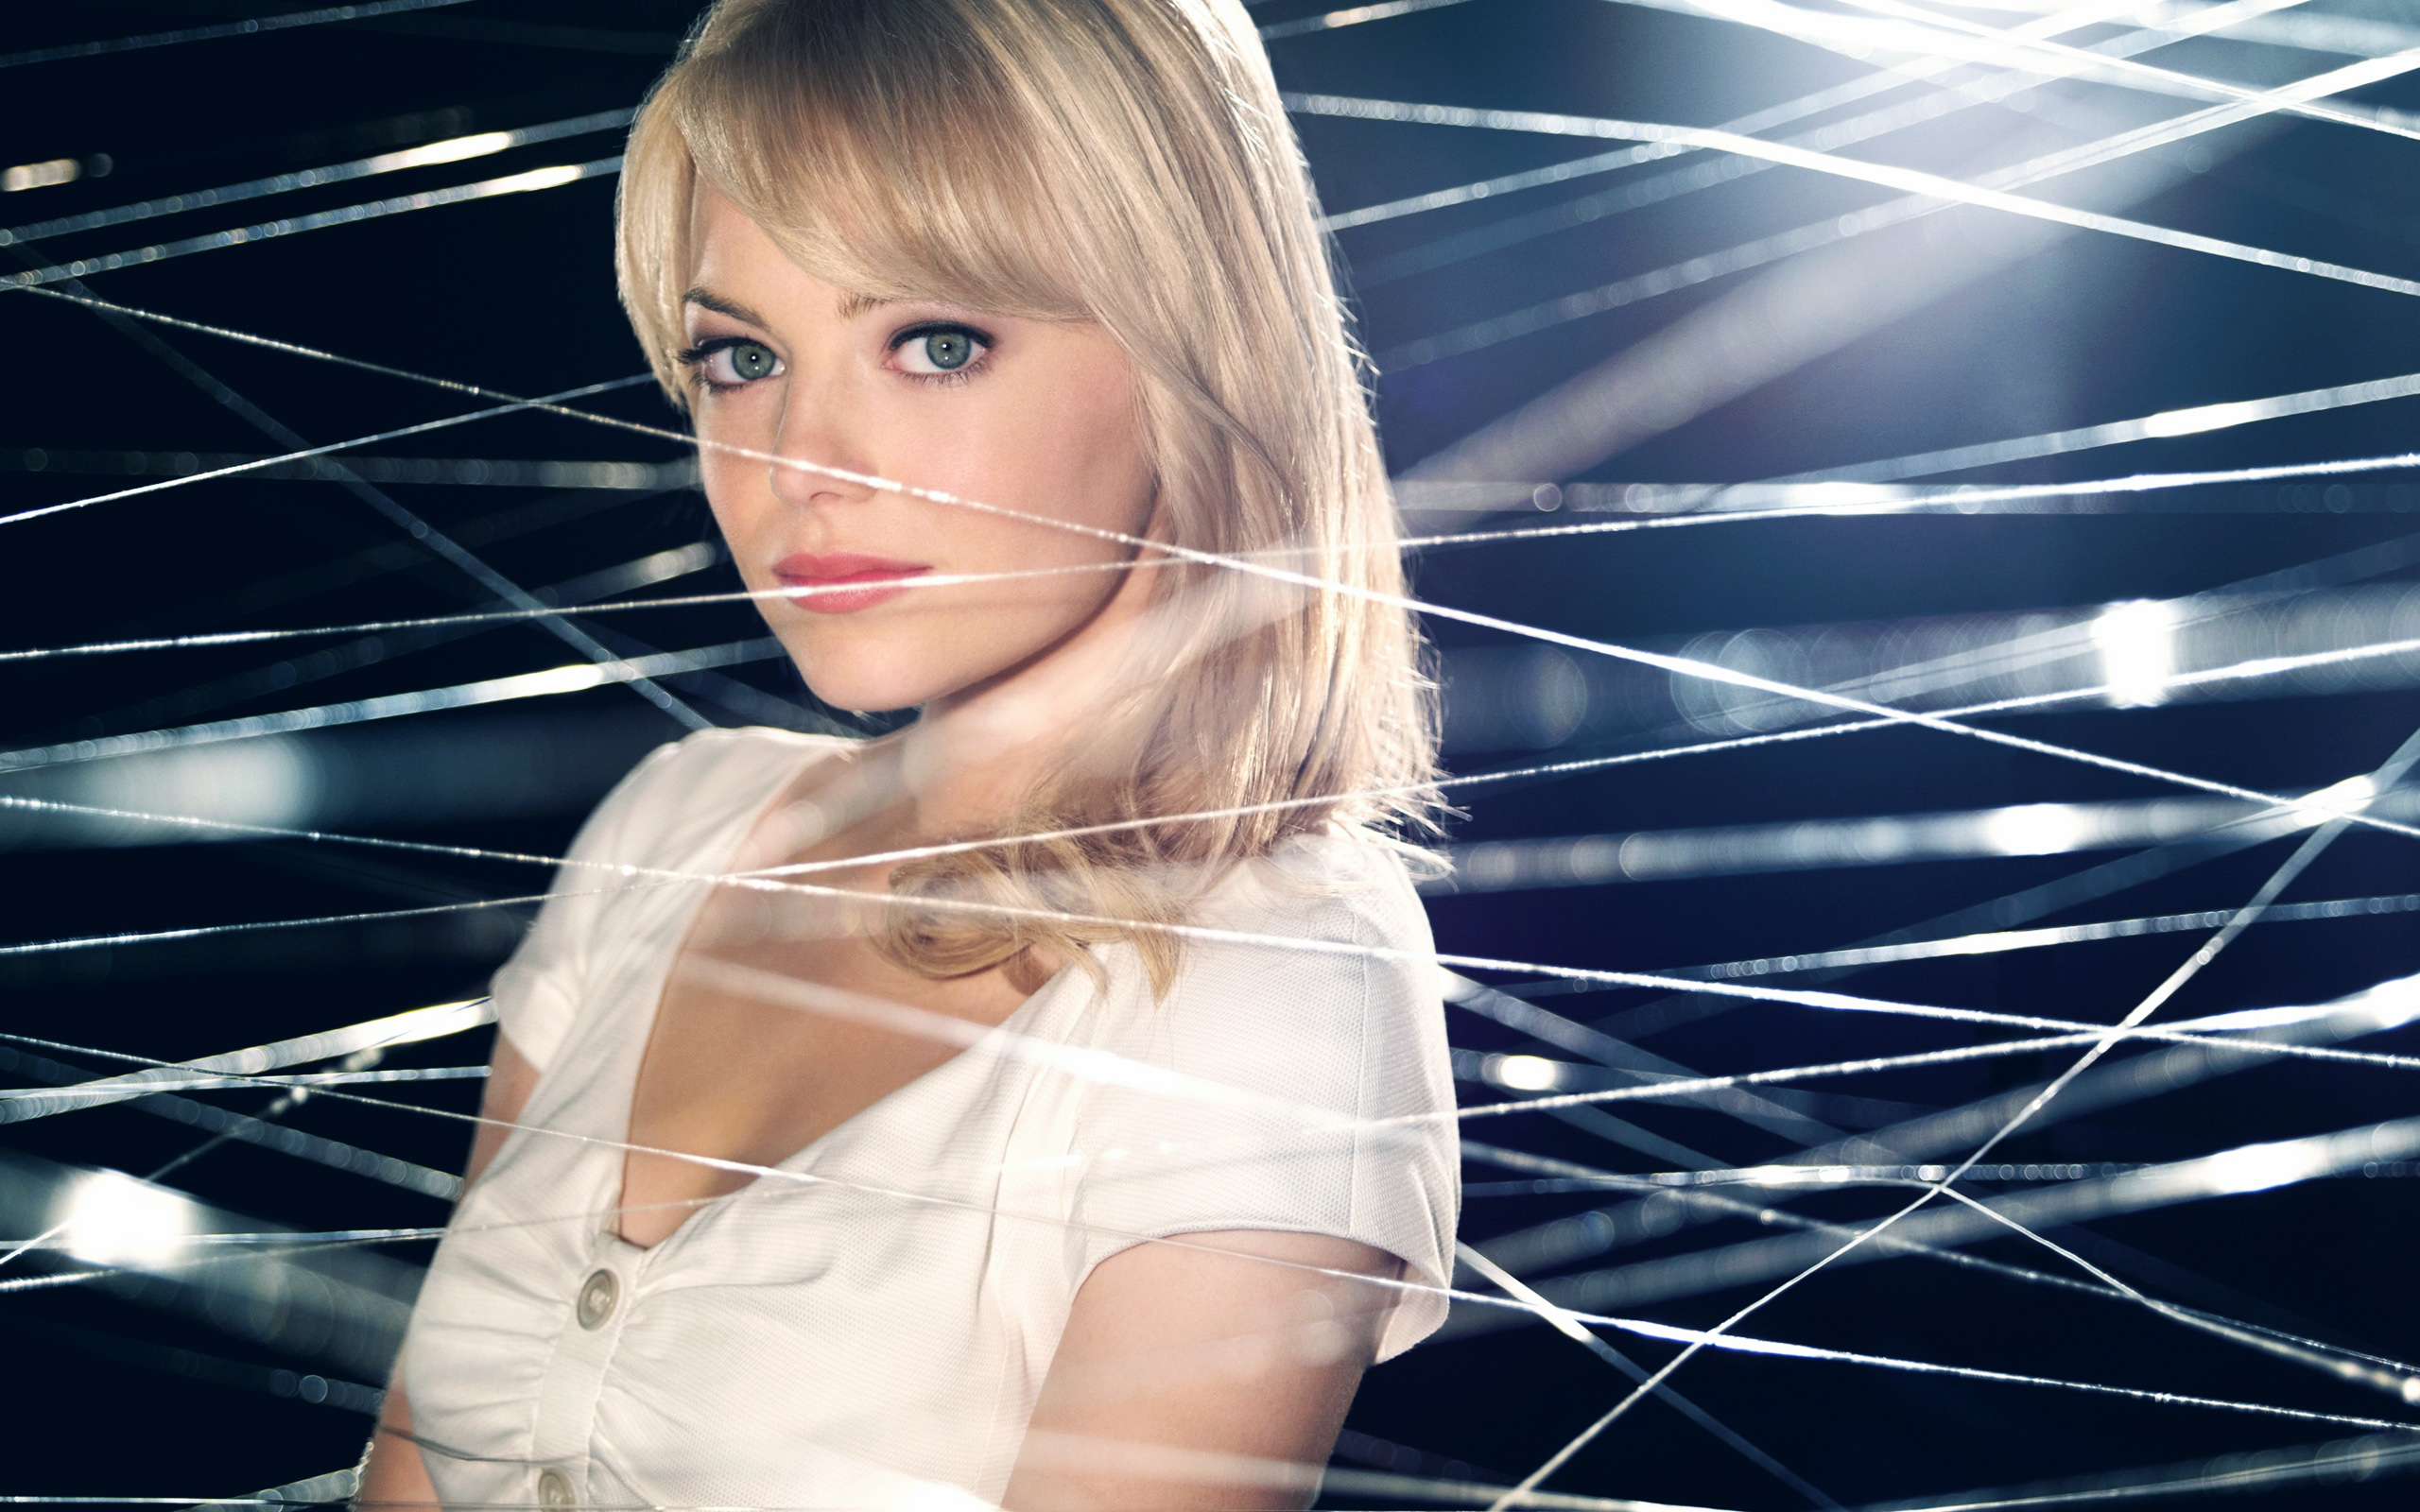 Amazing Spider Man 2s Gwen Stacy Says Shes The Brains And More